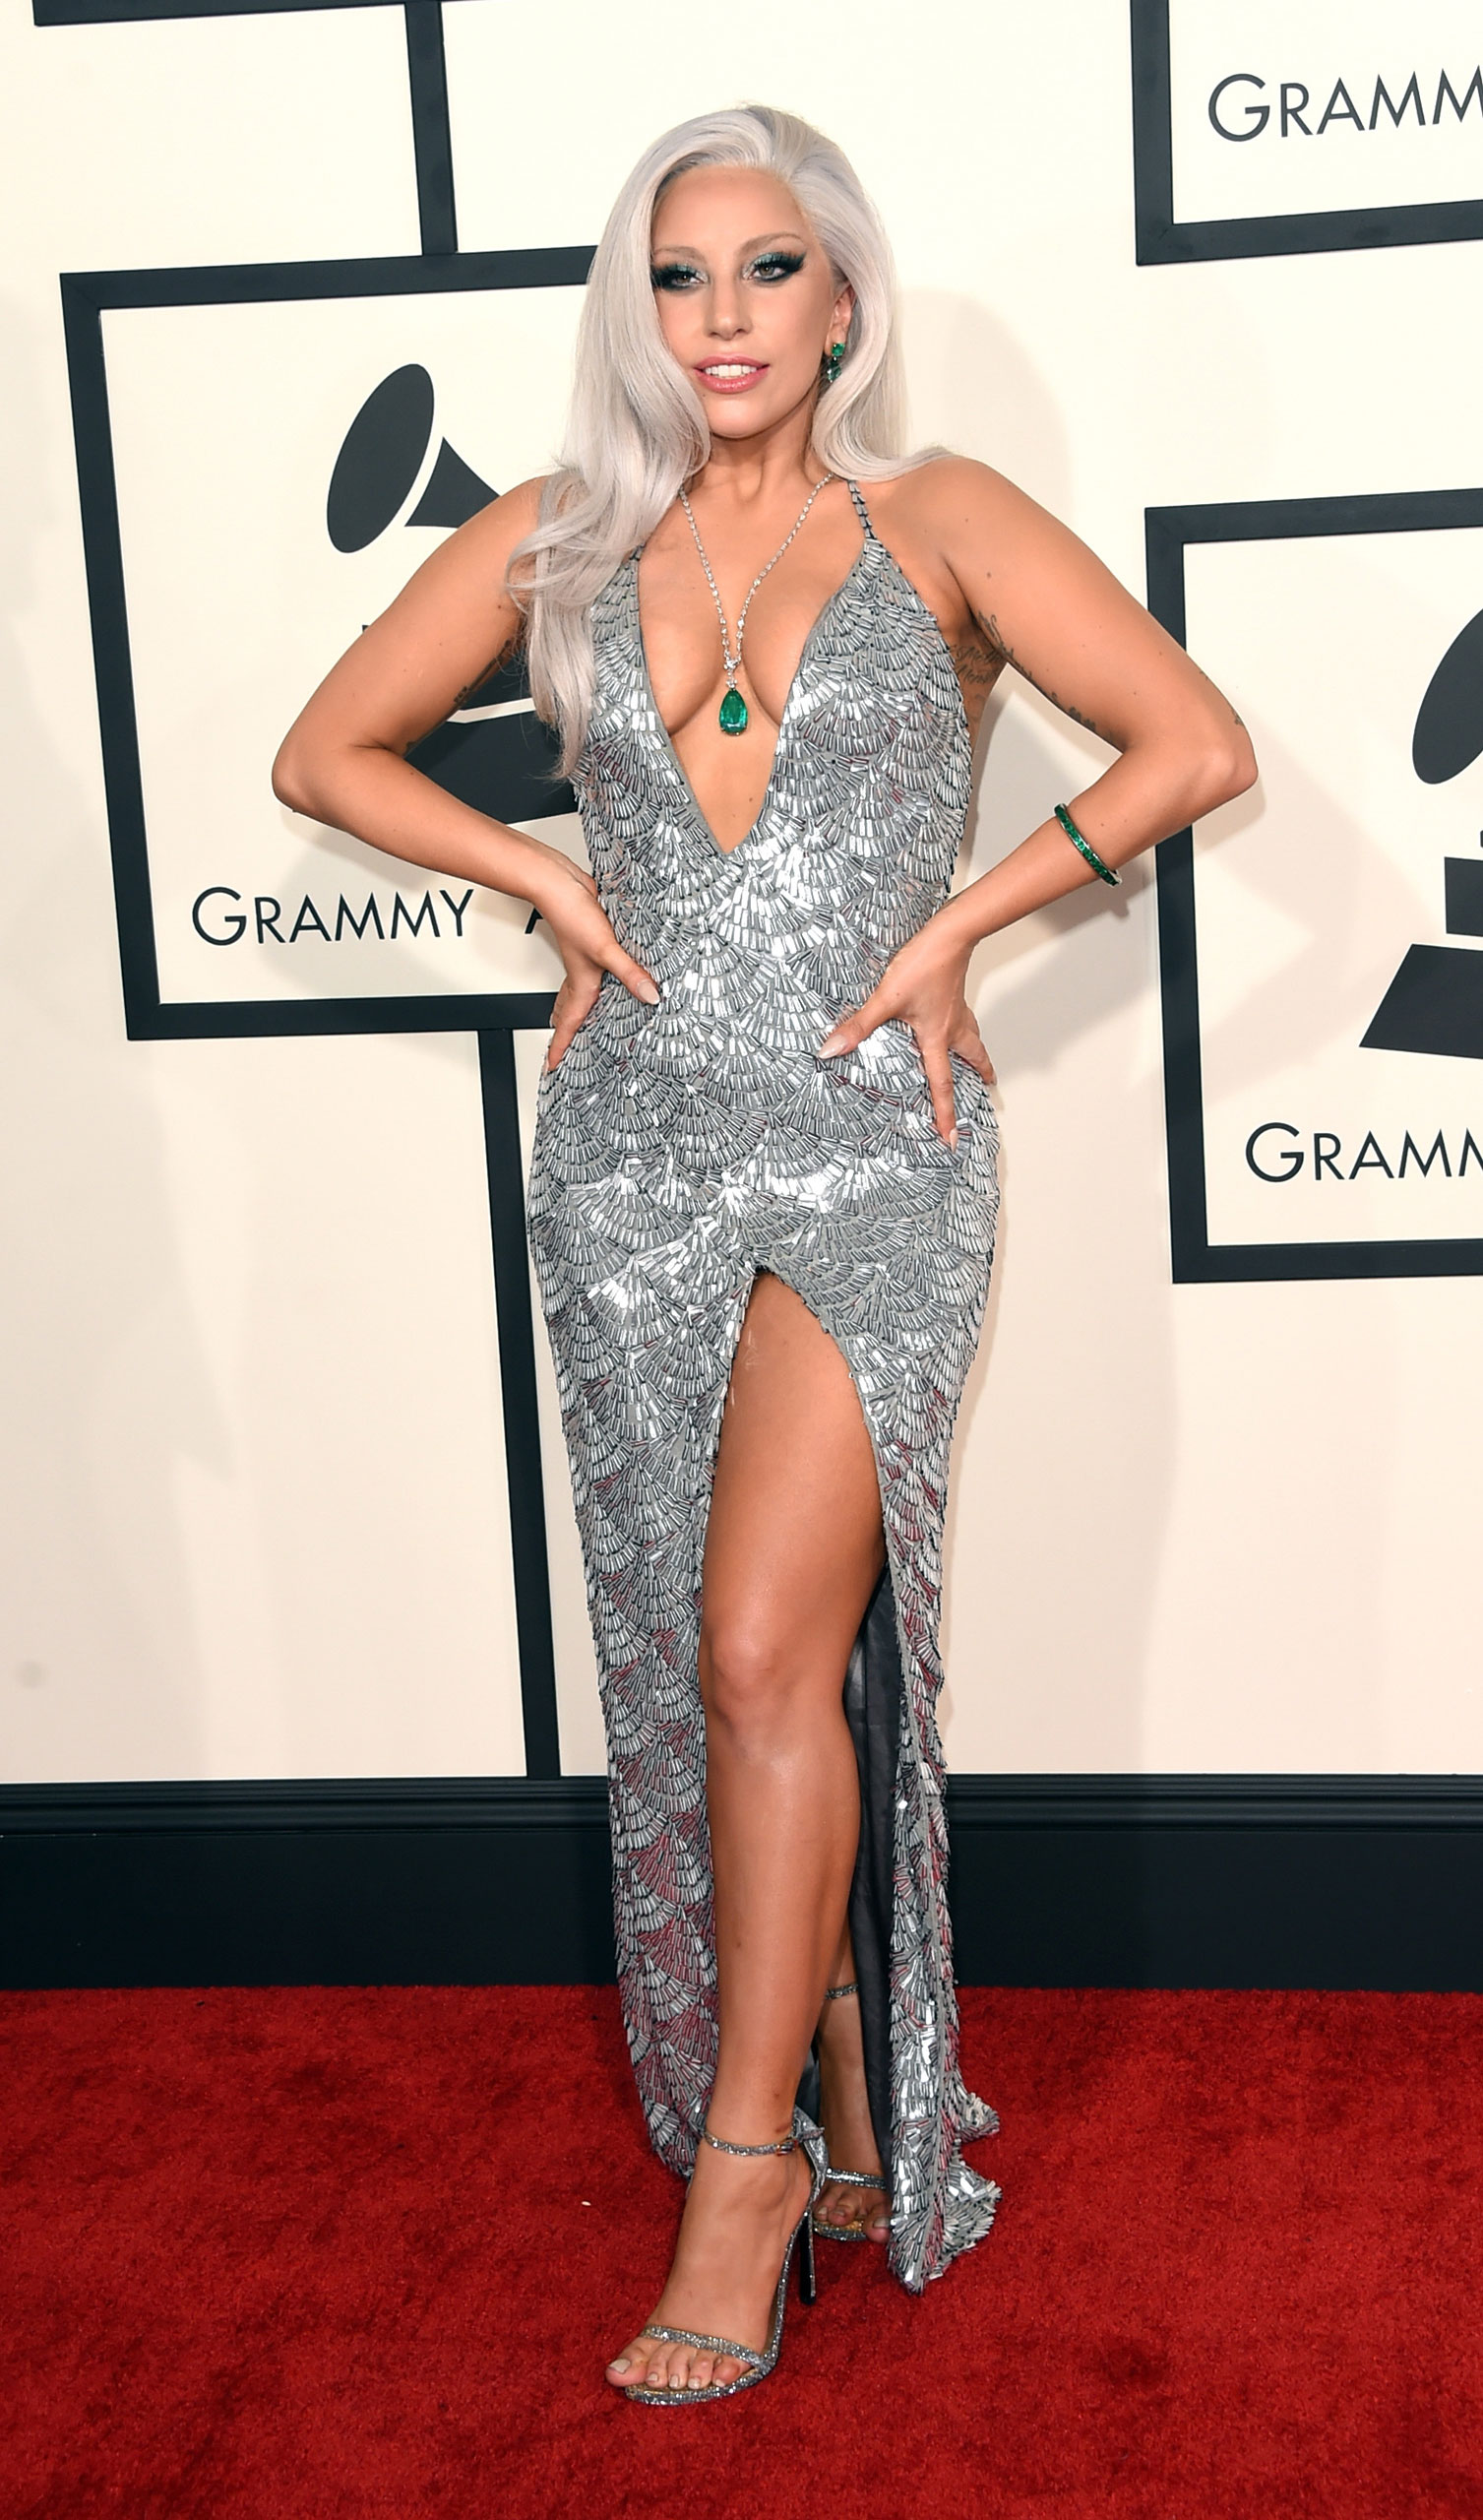 Lady Gaga attends the 57th Annual Grammy Awards at the Staples Center on Feb. 8, 2015 in Los Angeles, Calif.